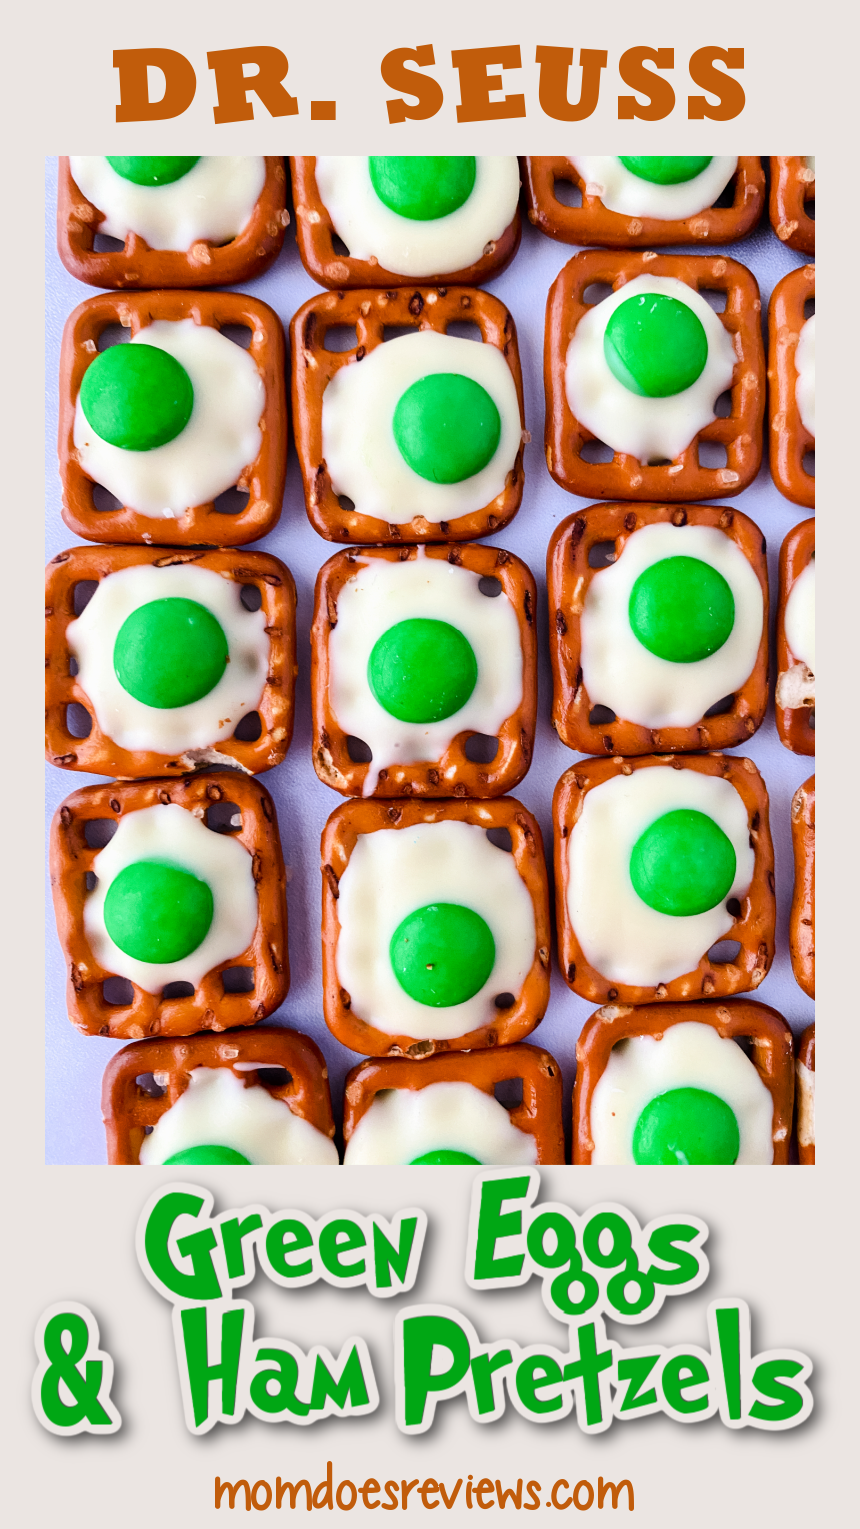 Dr. Seuss Green Eggs and Ham -Fun Chocolate Covered Pretzels